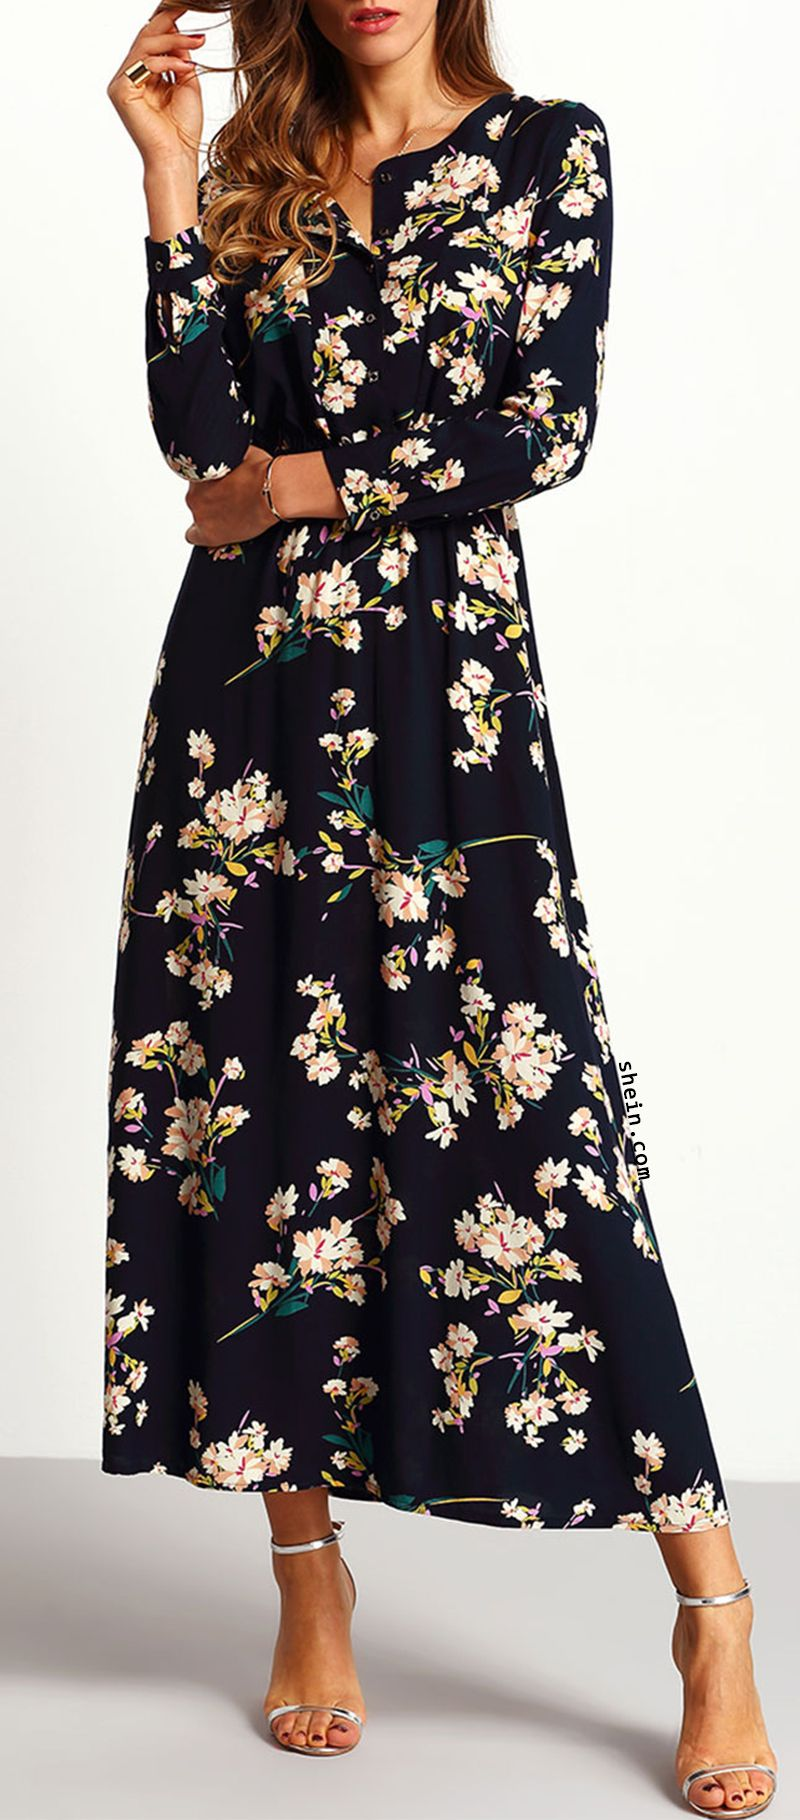 eefb008ae2 Navy Floral Maxi Dress. Elegant & comfortable! By shein ...